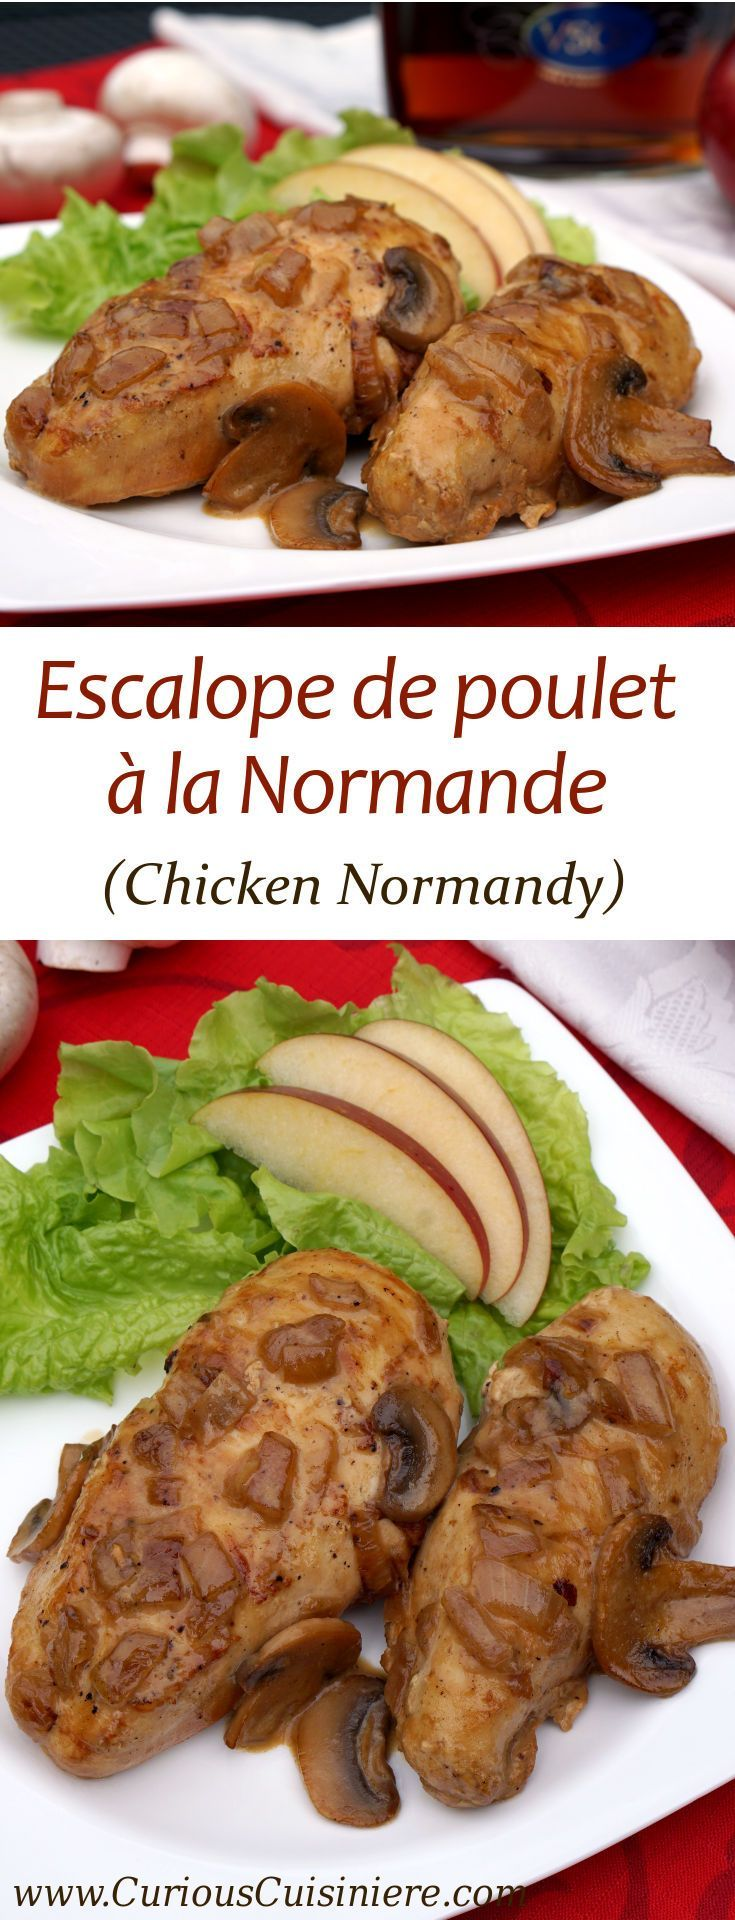 169 best french food recipes images on pinterest desert recipes escalope de poulet la normande chicken normandy forumfinder Image collections